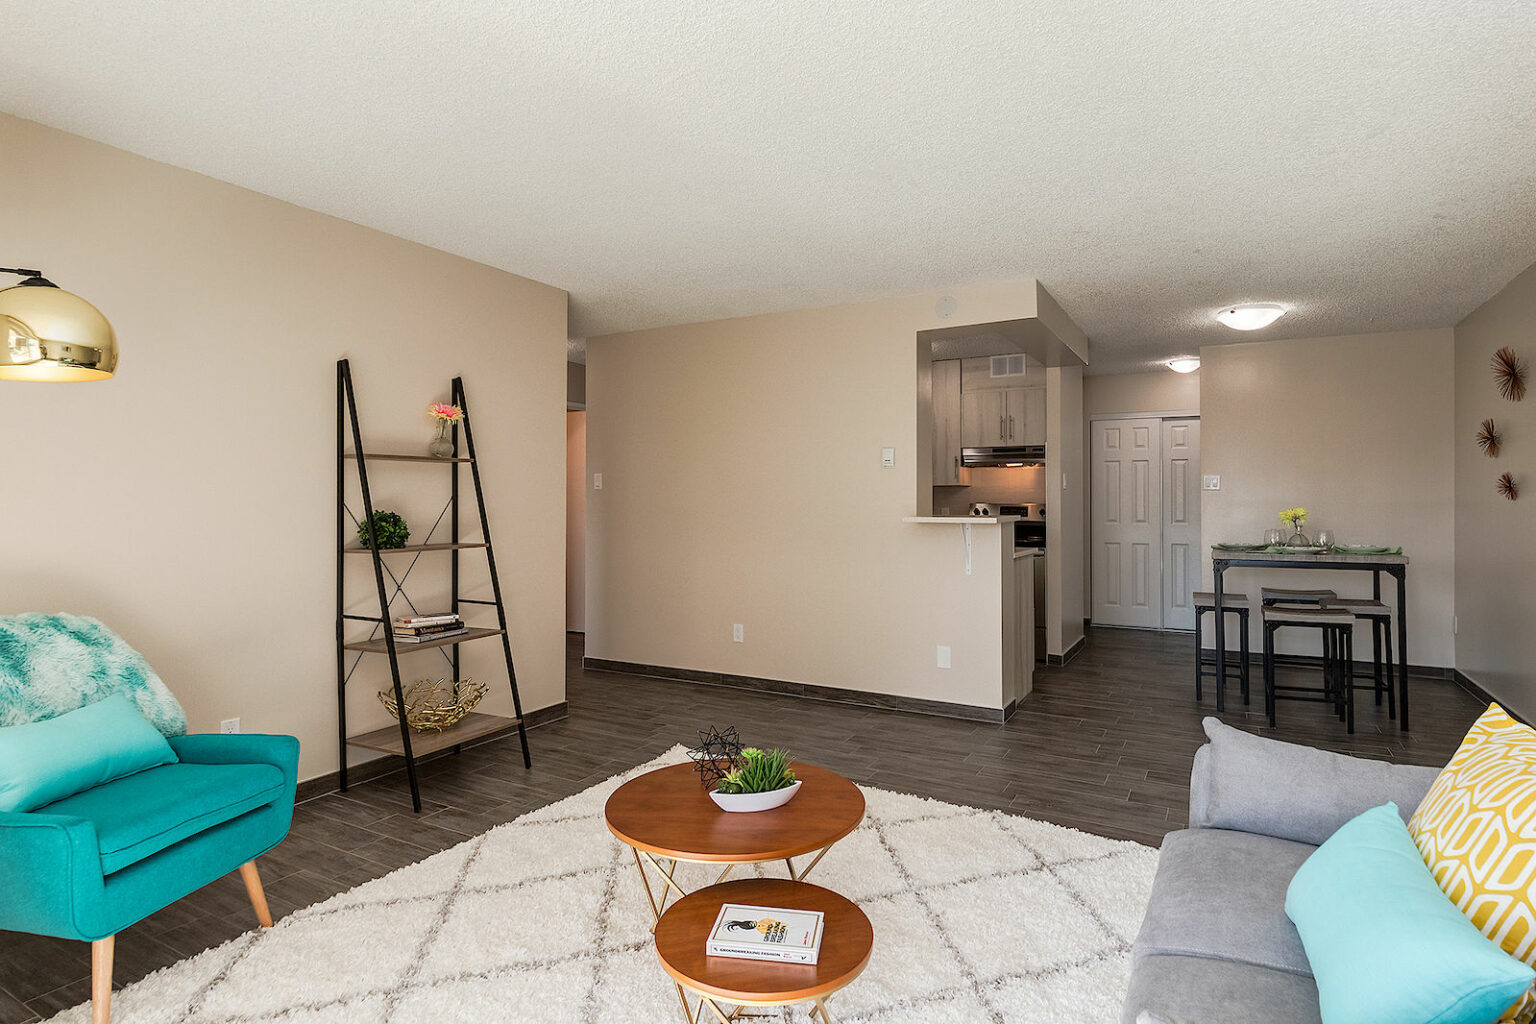 Cheap One Bedroom Apartments For Rent Near Me - Home and ...